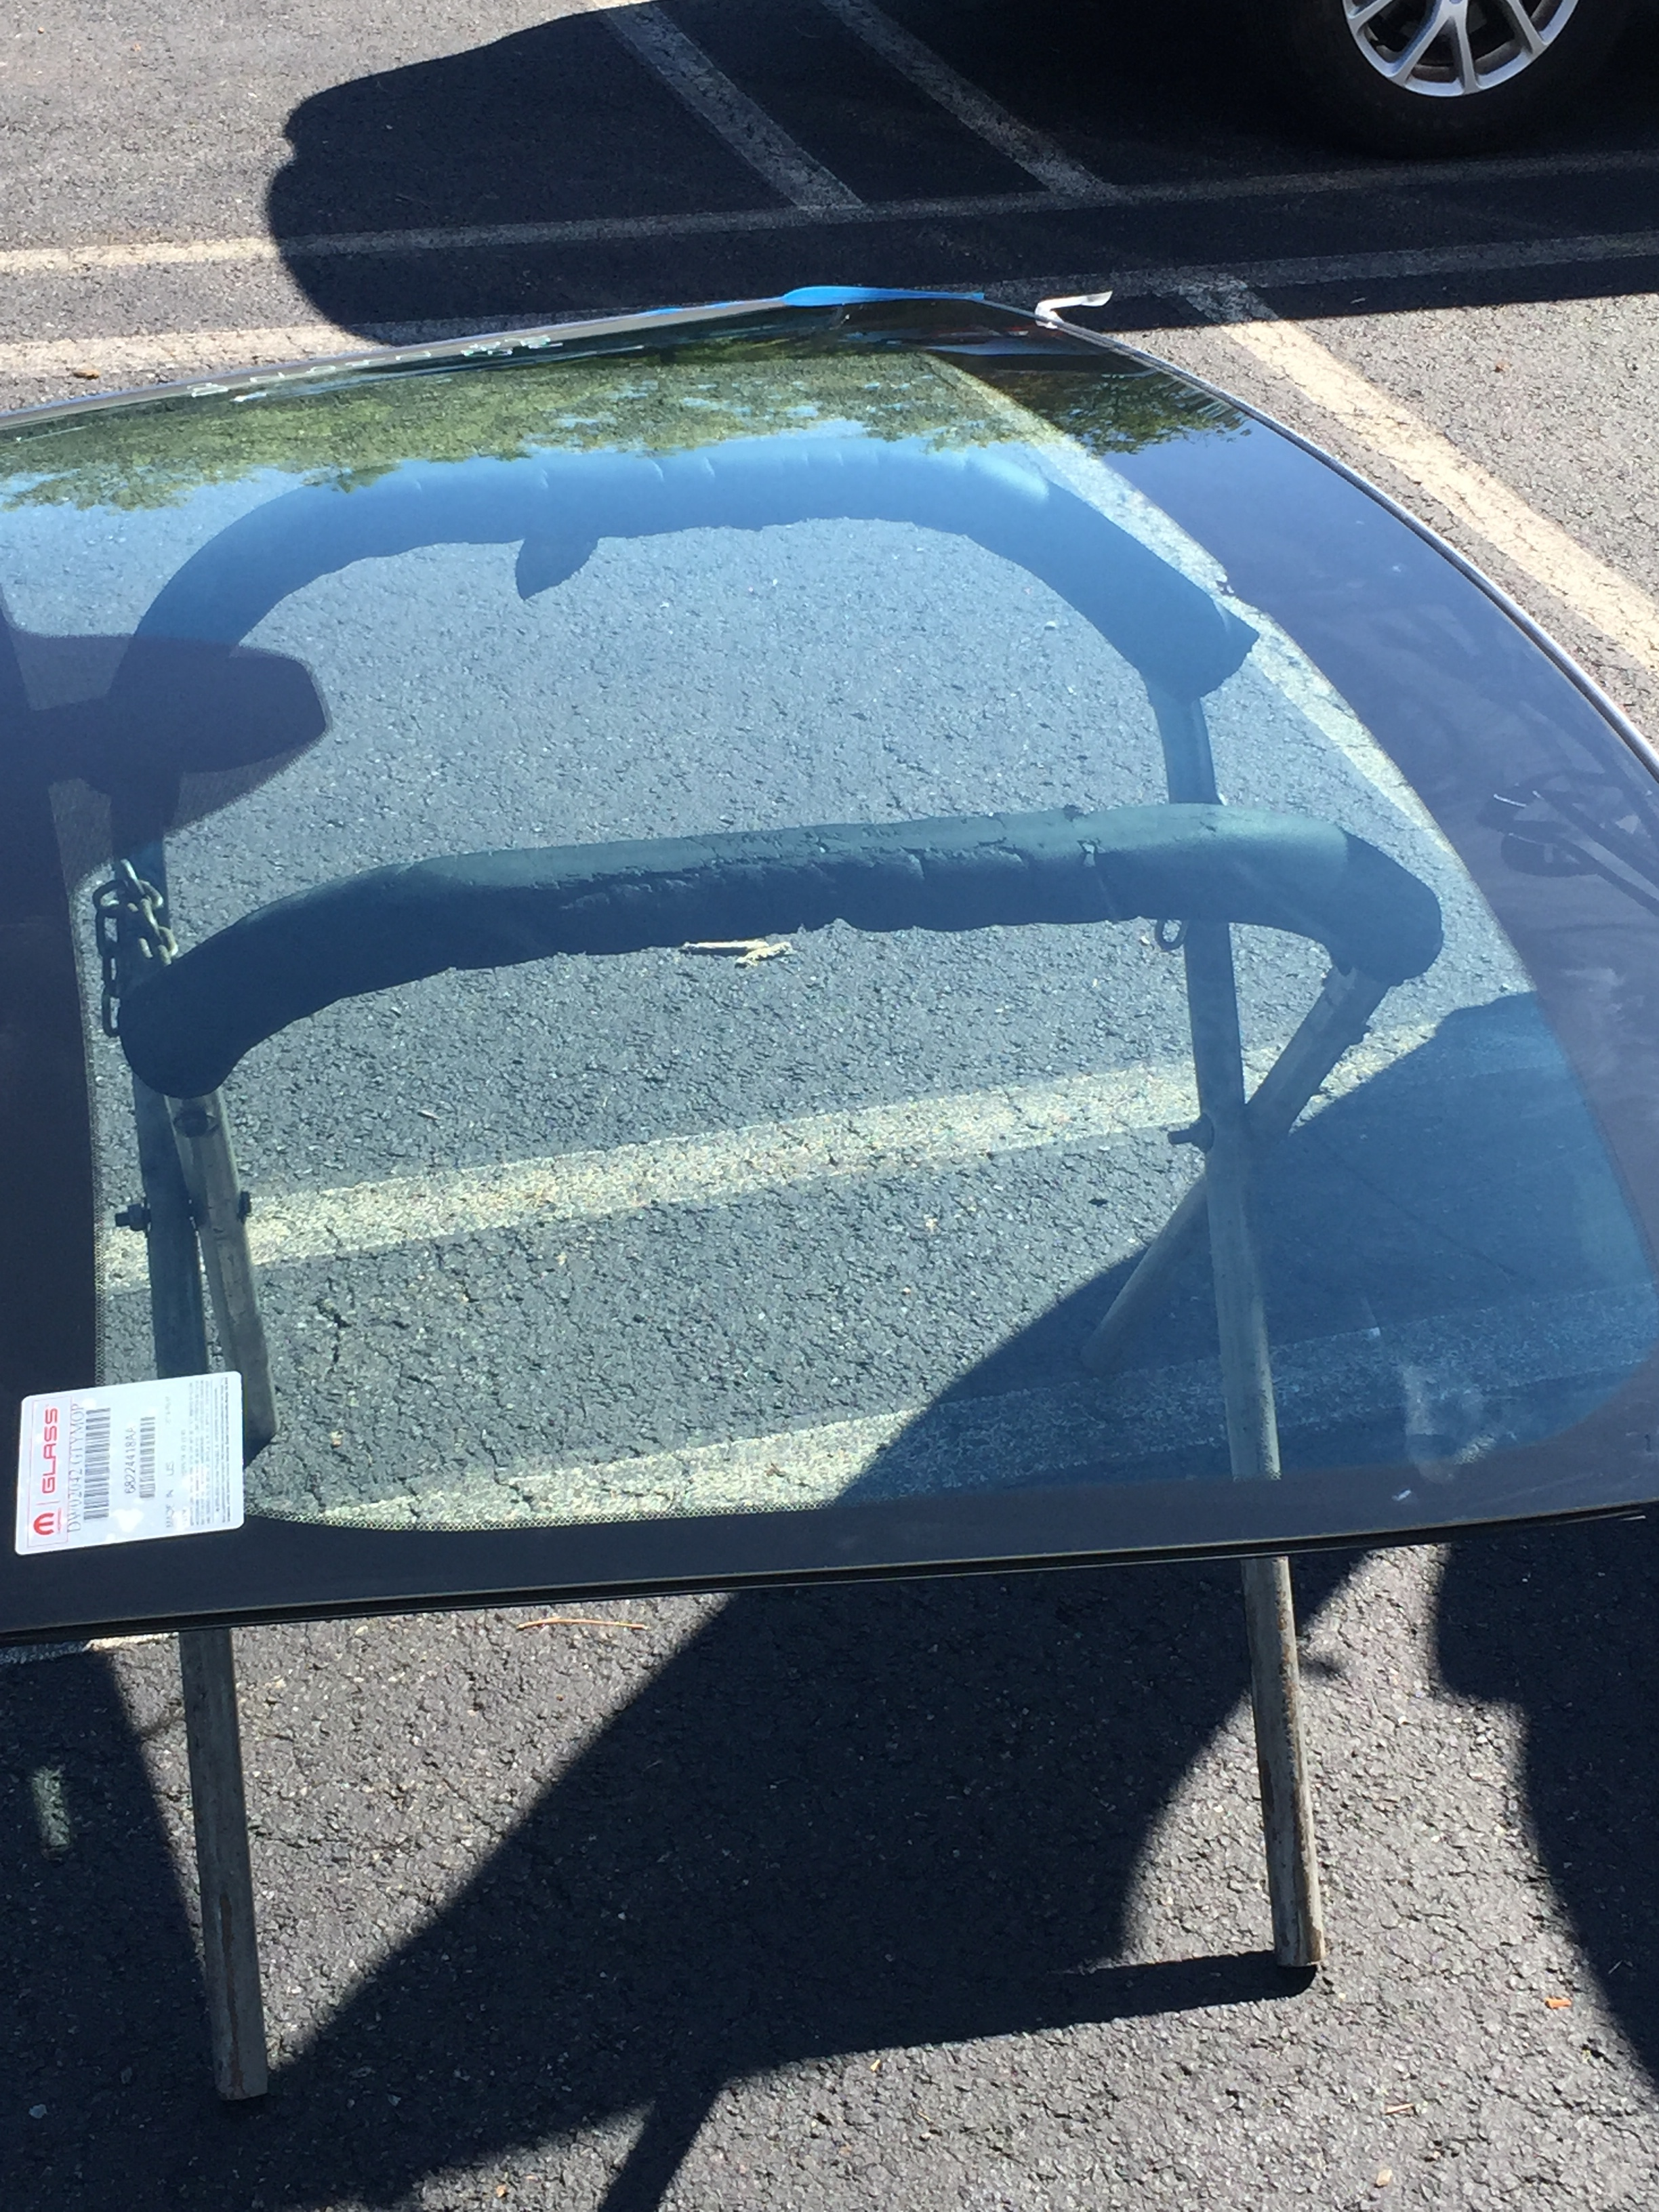 2017 Dodge Charger Windshield Replacement OEM Glass ready to go in by  Platinum Auto Glass NJ@platinumautoglassnj